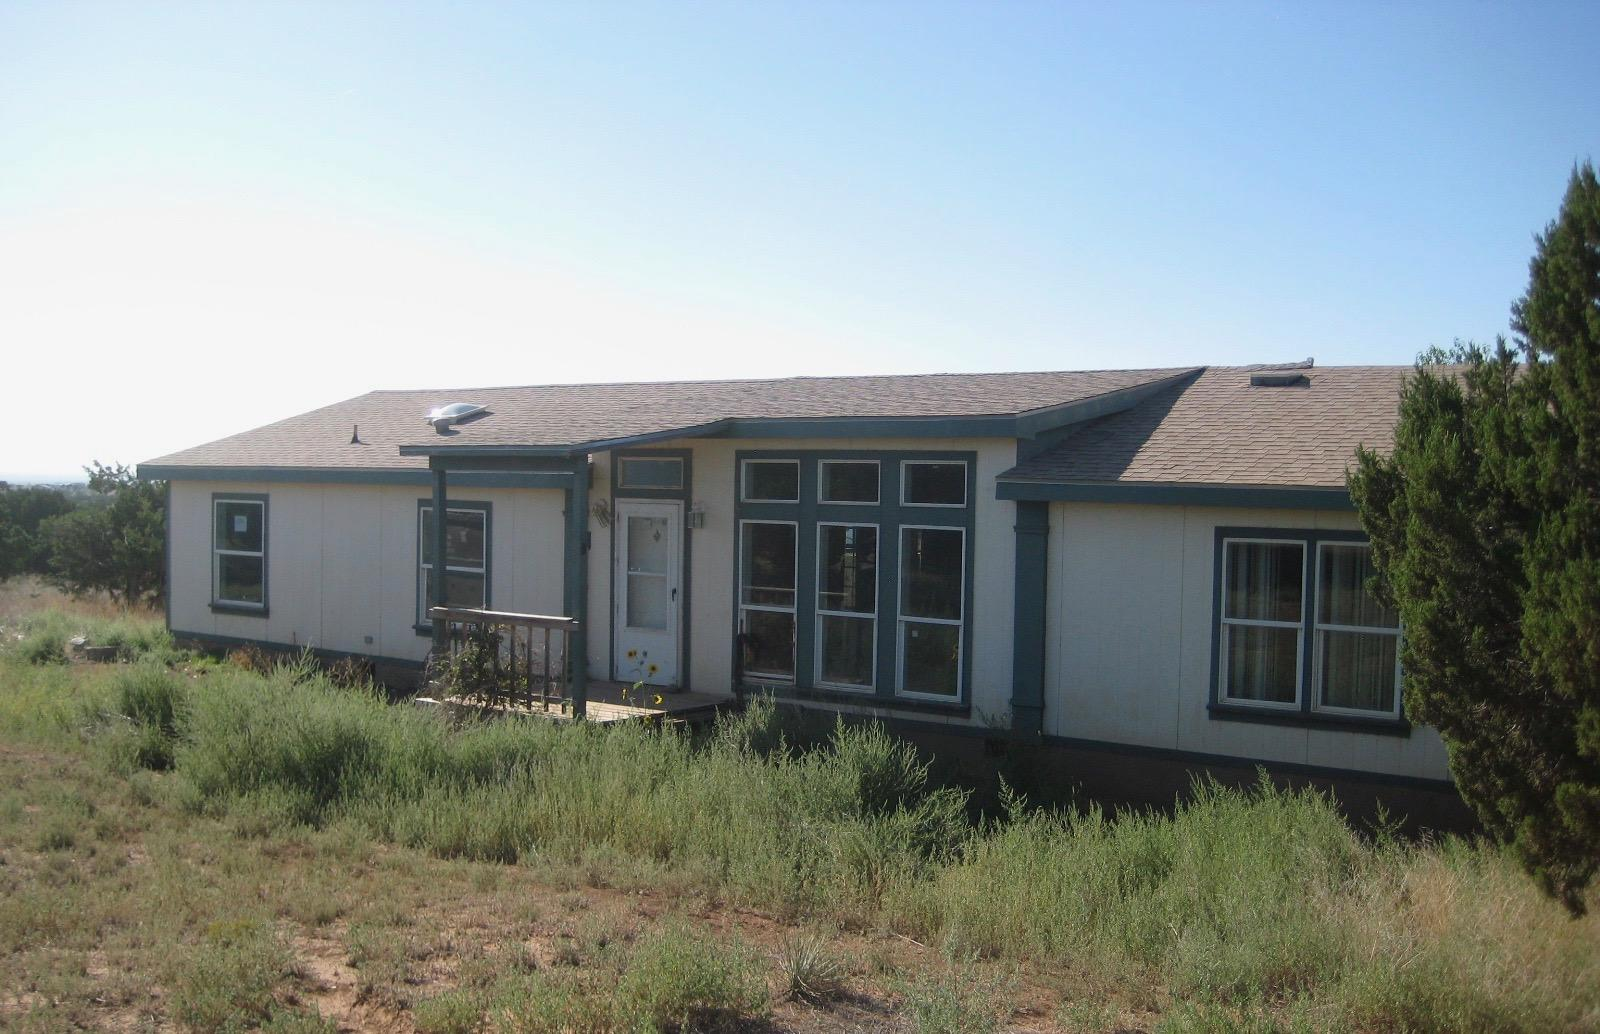 Welcome to quiet country living. This manufactured home features 3 bedrooms and 2 baths. Enjoy relaxing in the large living room or eating in the dining room. Ideally situated close to shopping, parks, schools and all the amenities of the city. Only a 30-minute commute to Albuquerque or about an hour to Santa Fe. DON'T MISS THIS ONE!!!